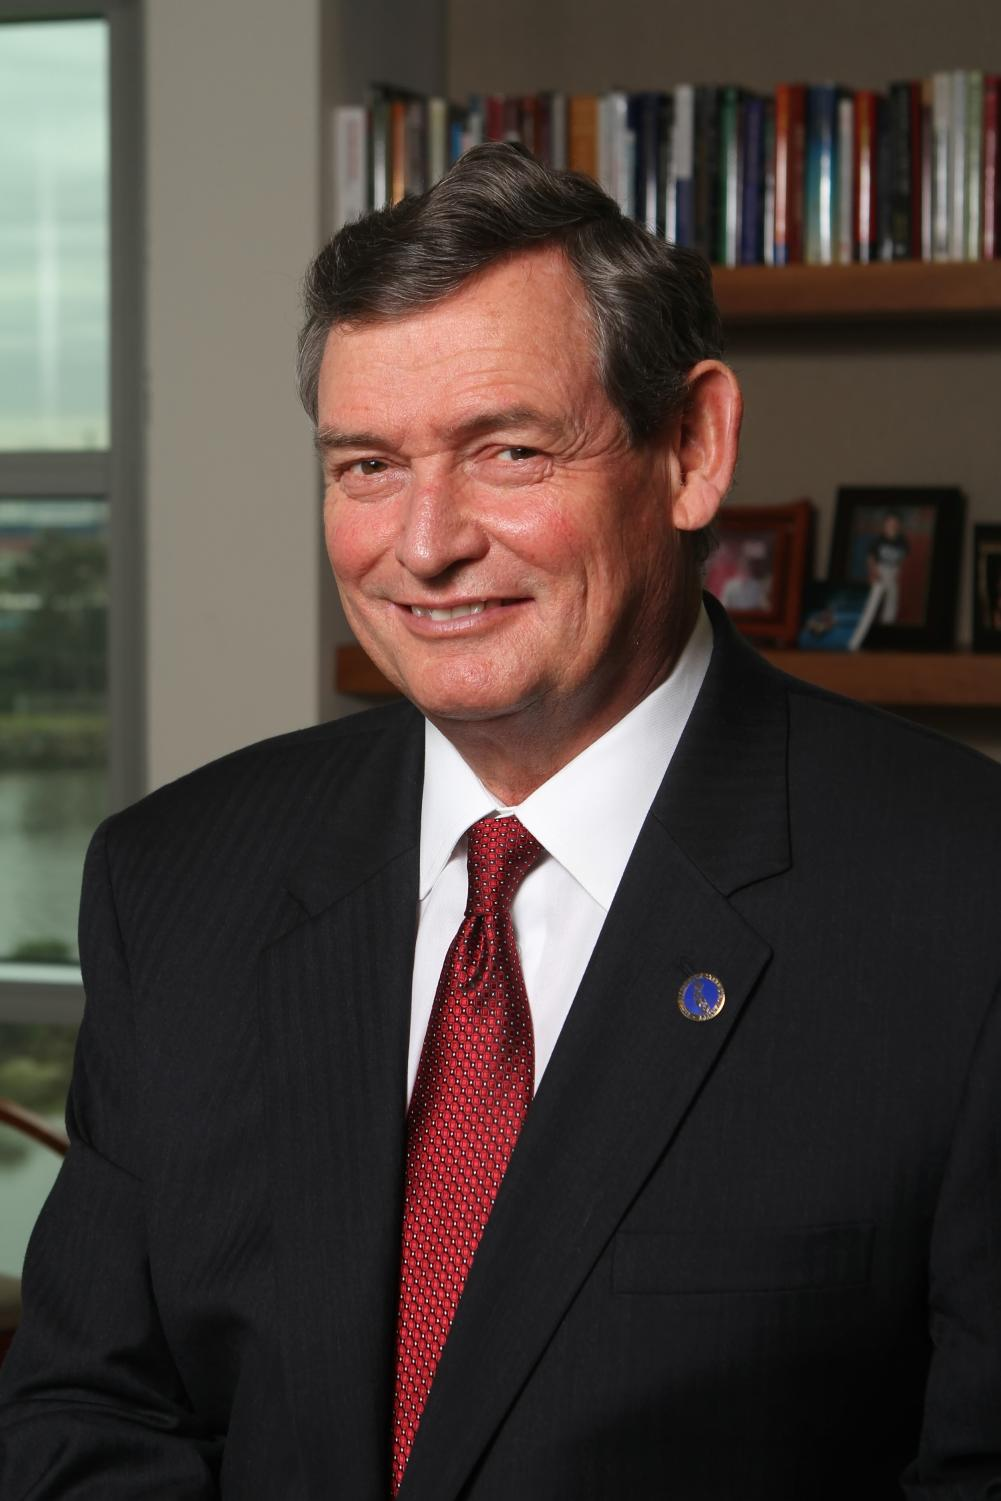 CSU Chancellor Timothy White visited SDSU on Oct. 17 and 18 to discuss the Graduation Initiative 2025.